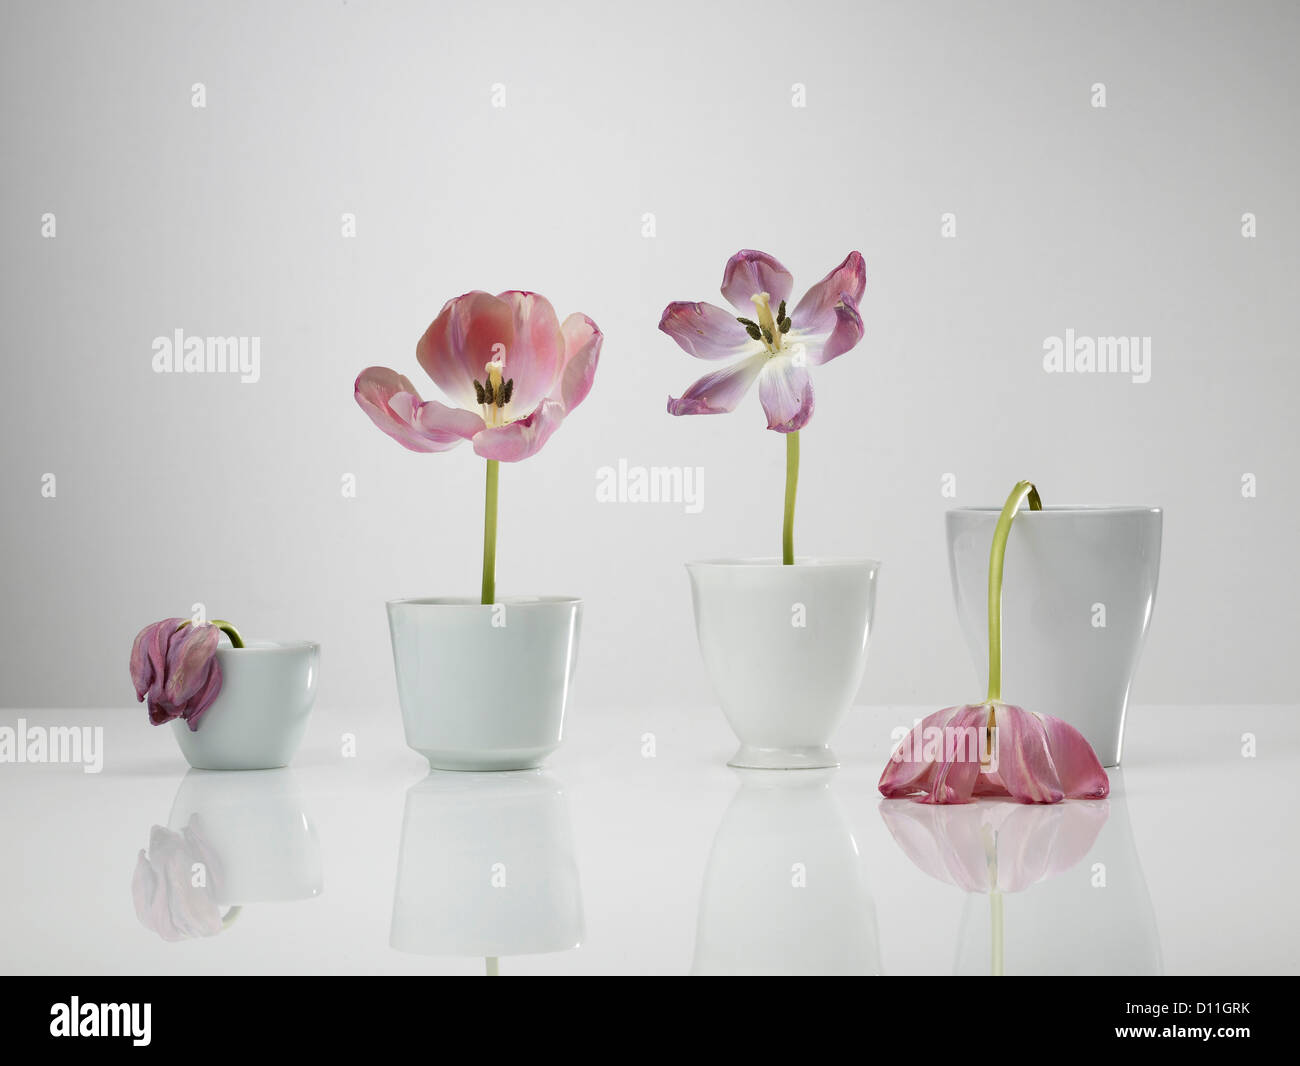 image of vase gerber photo free spring vases stock royalty in flowers